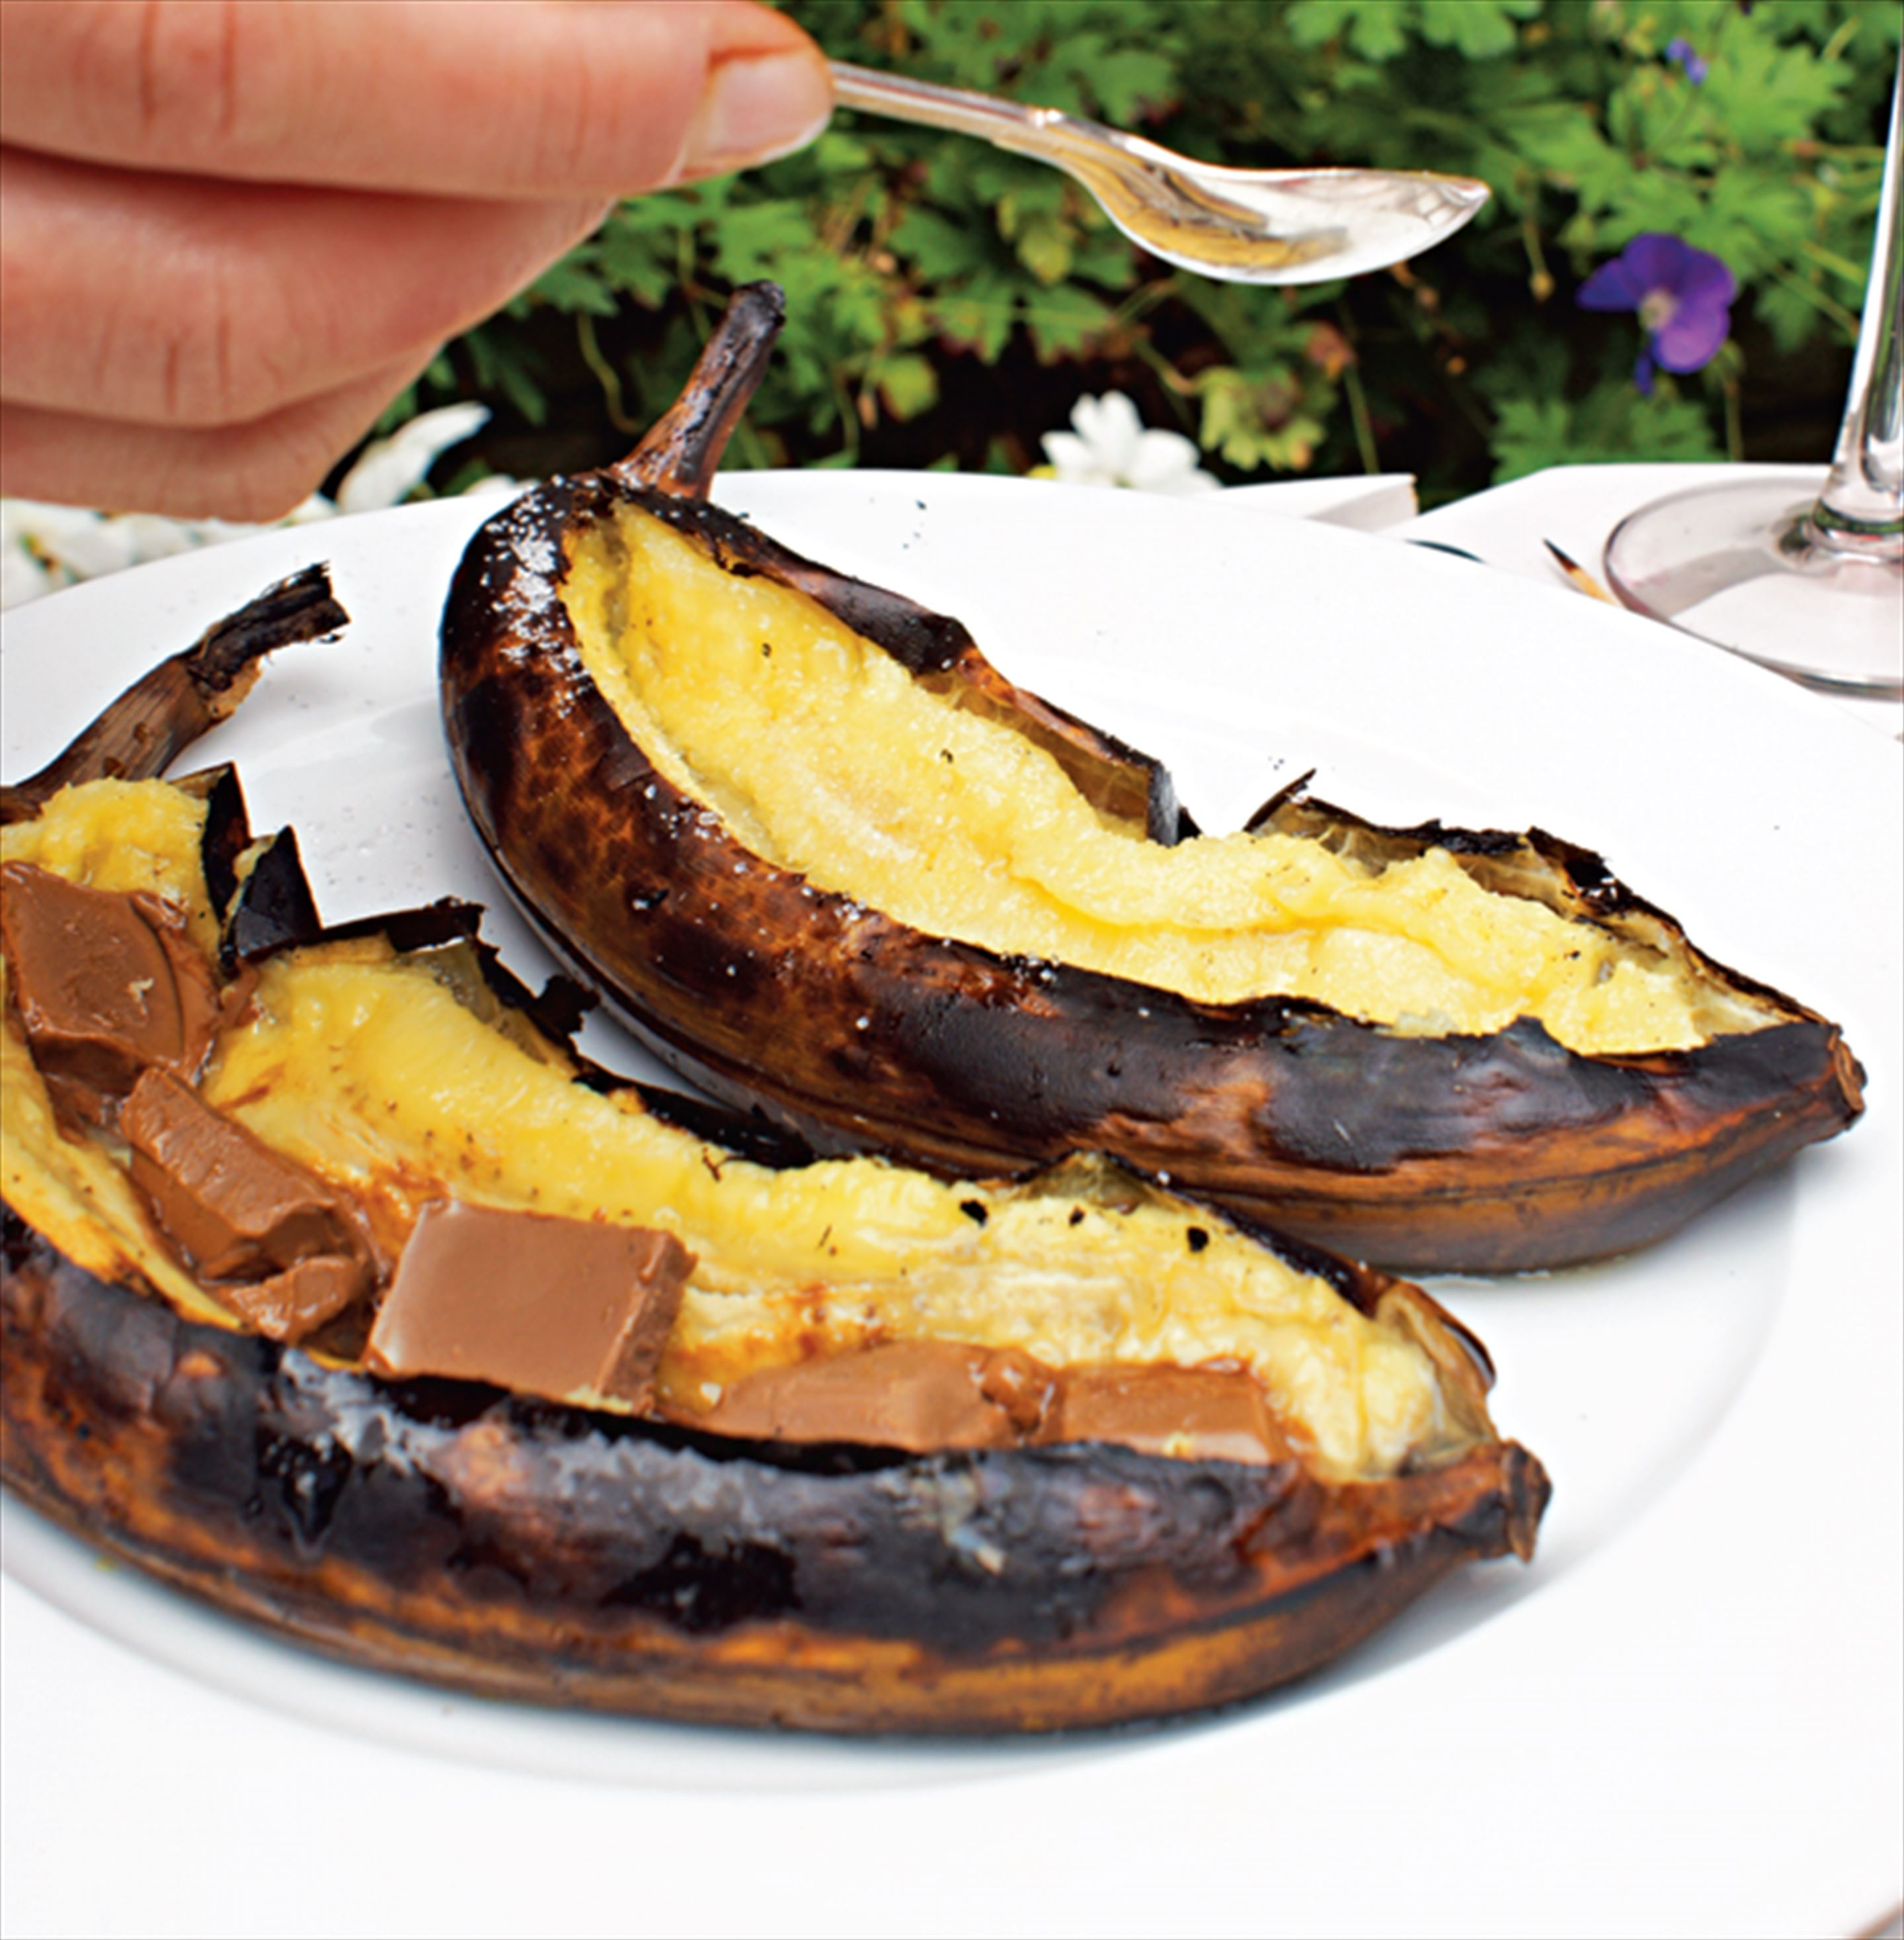 Barbecued bananas